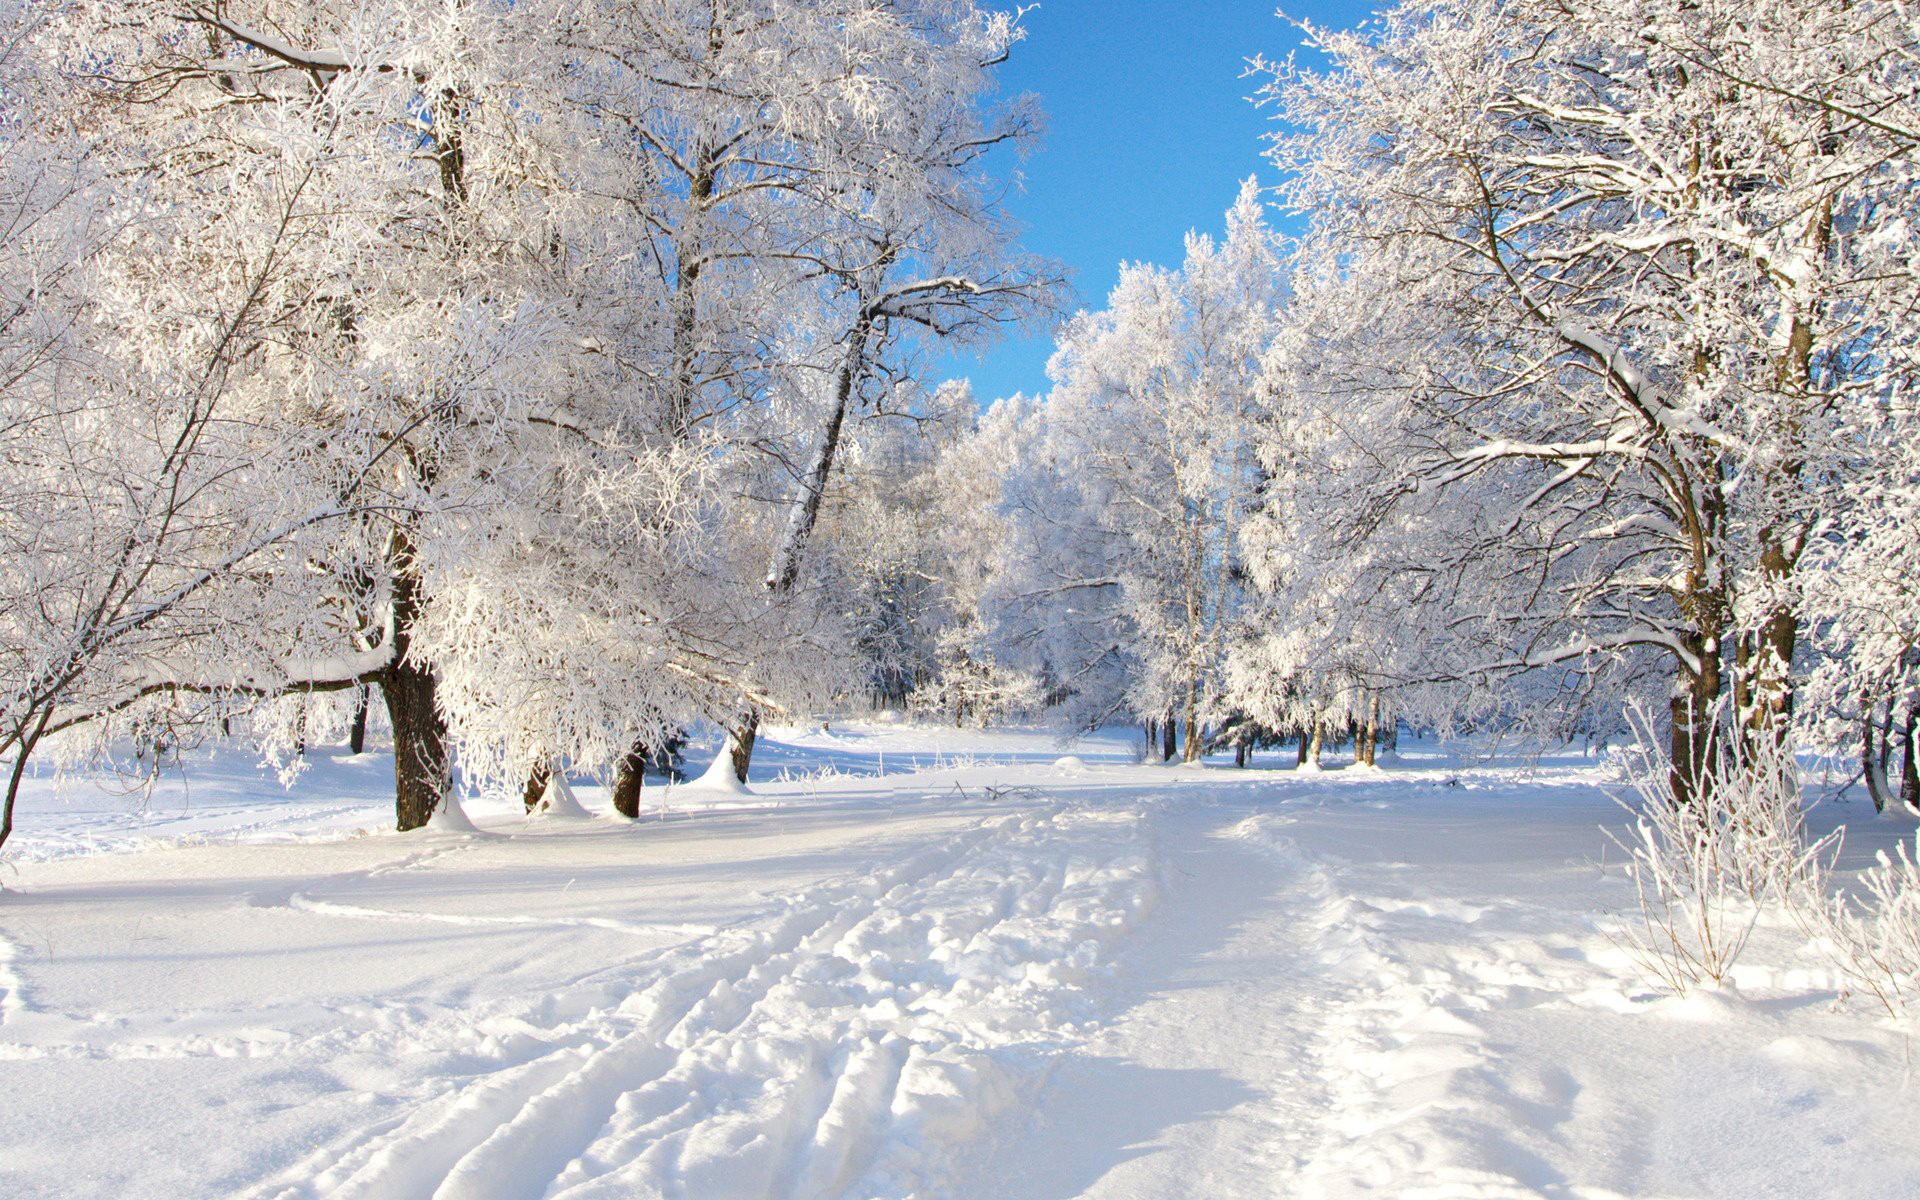 free winter wallpaper for desktop 2015   Grasscloth Wallpaper 1920x1200